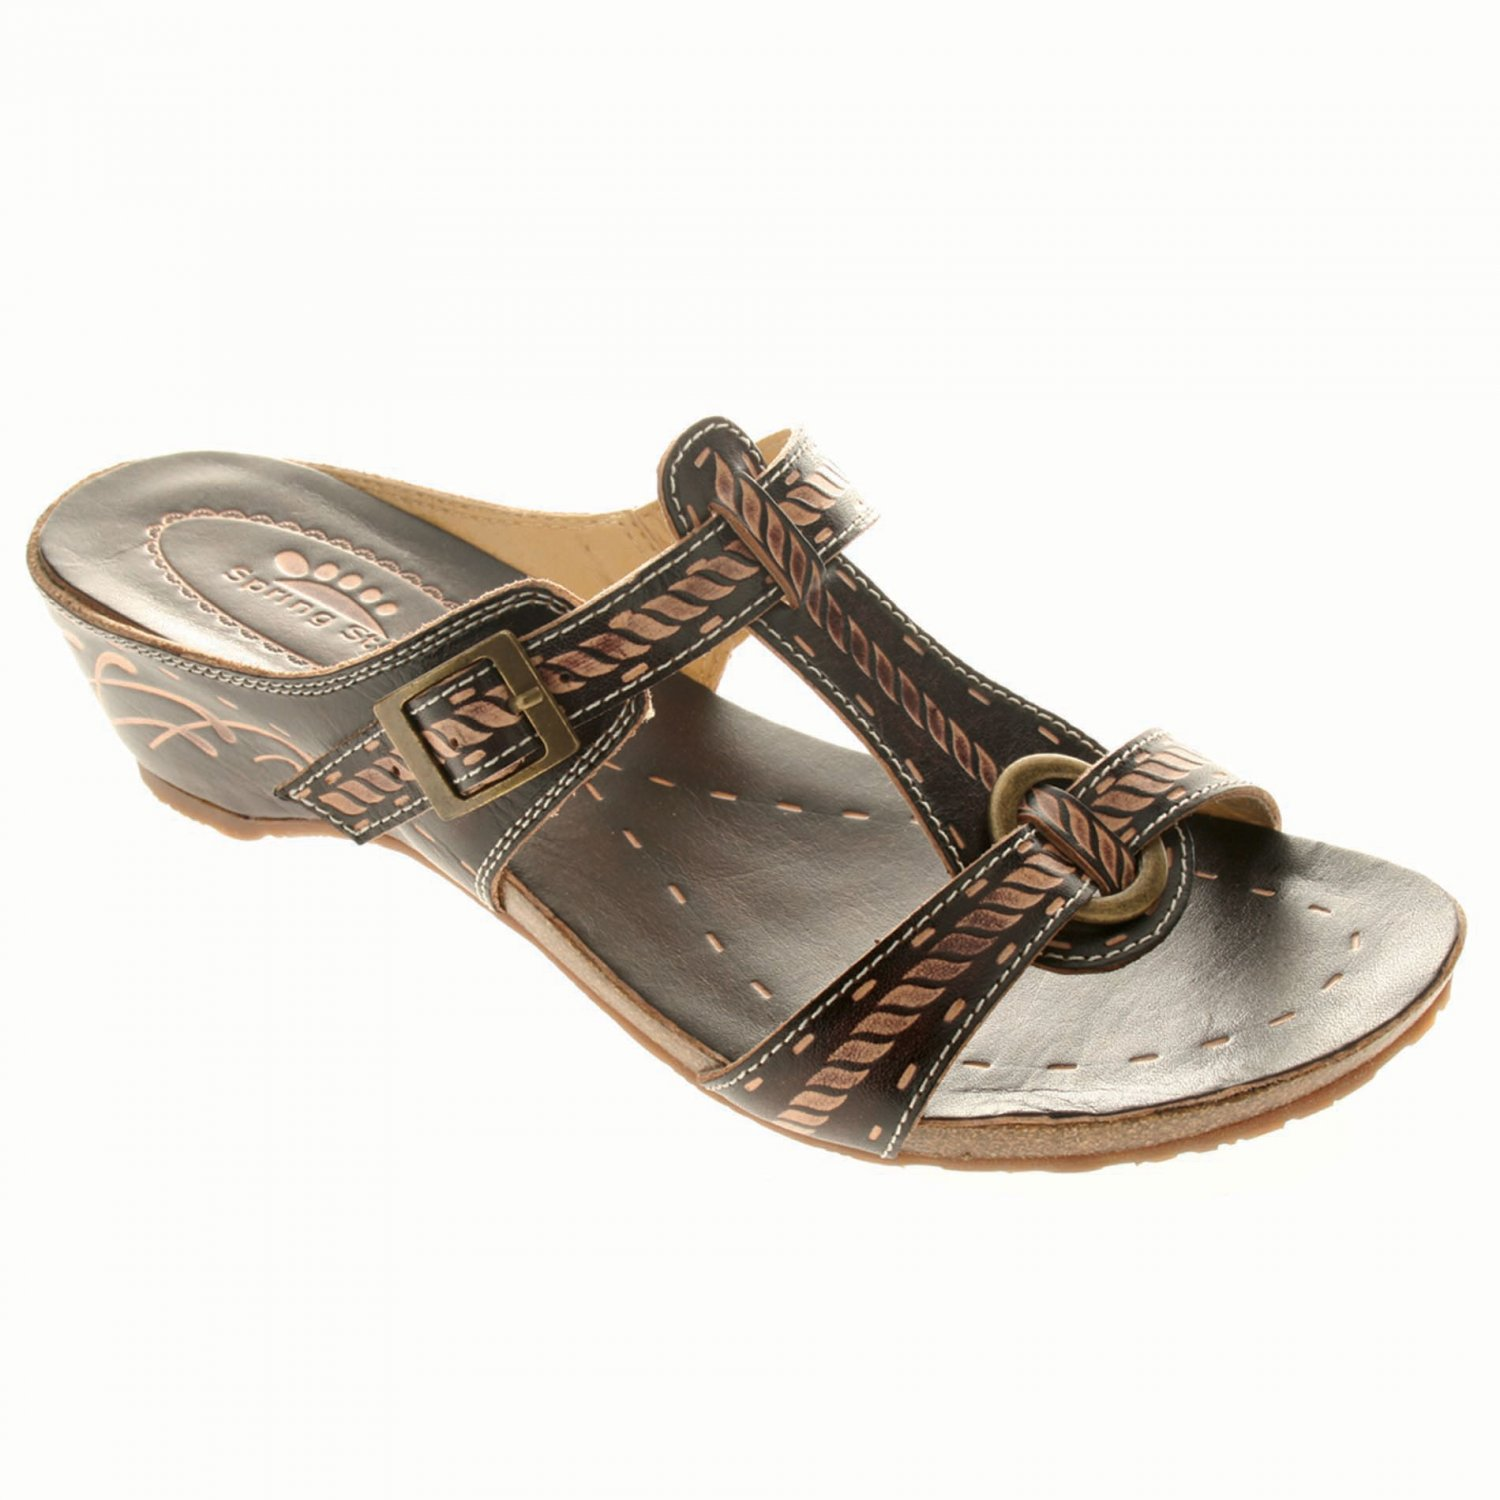 Spring Step CINNAMON Sandals Shoes All Sizes & Colors